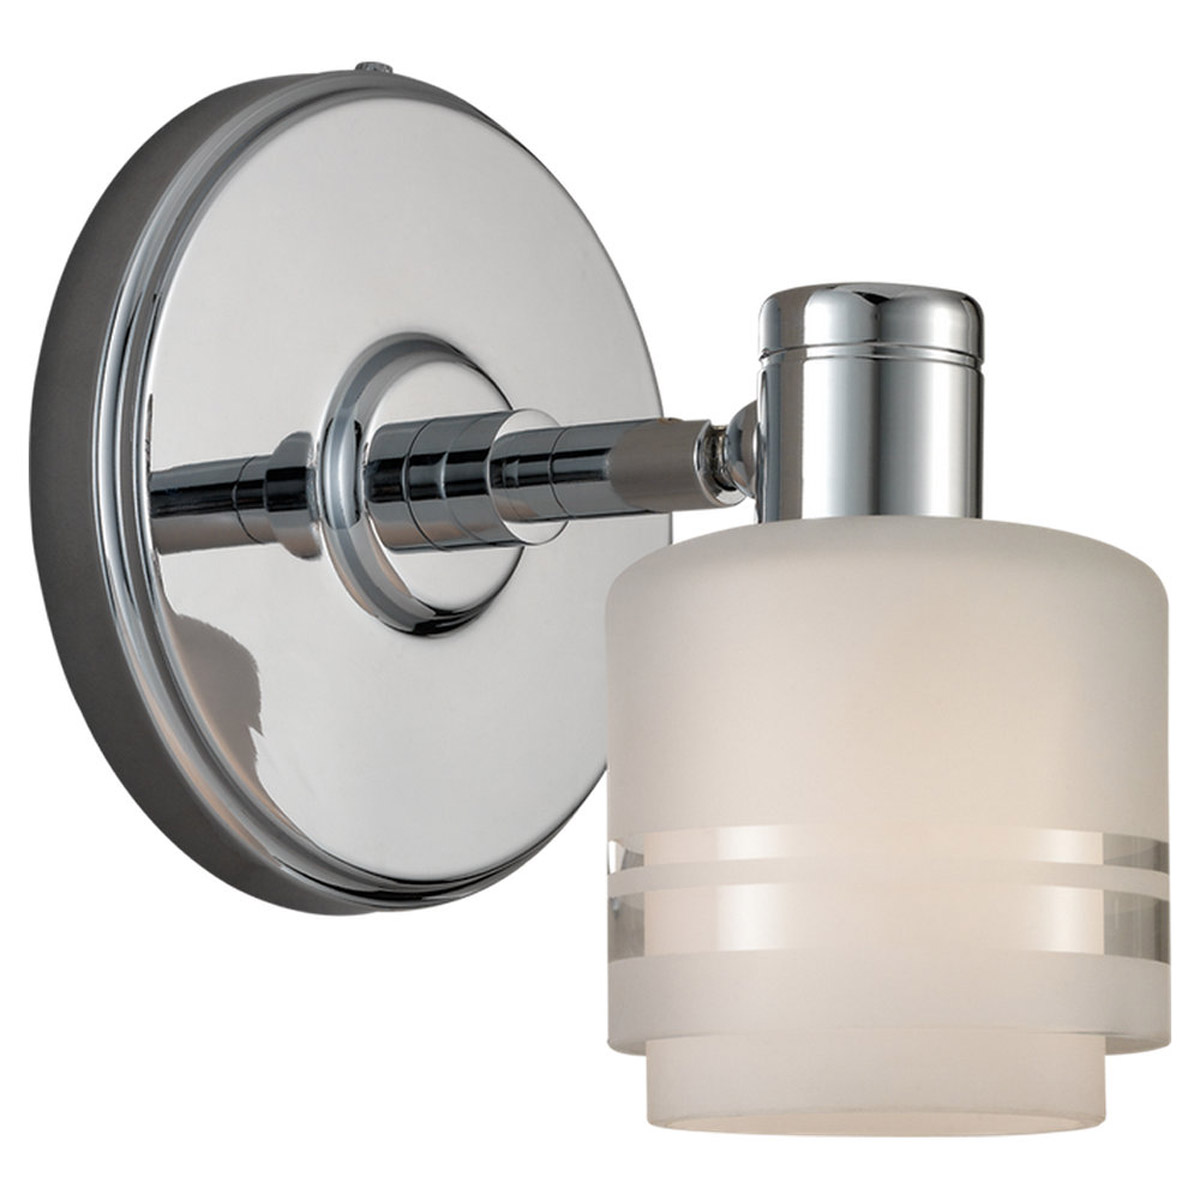 Sea Gull Lighting Groove 1 Light Wall / Bath / Vanity in Chrome 44730-05 photo